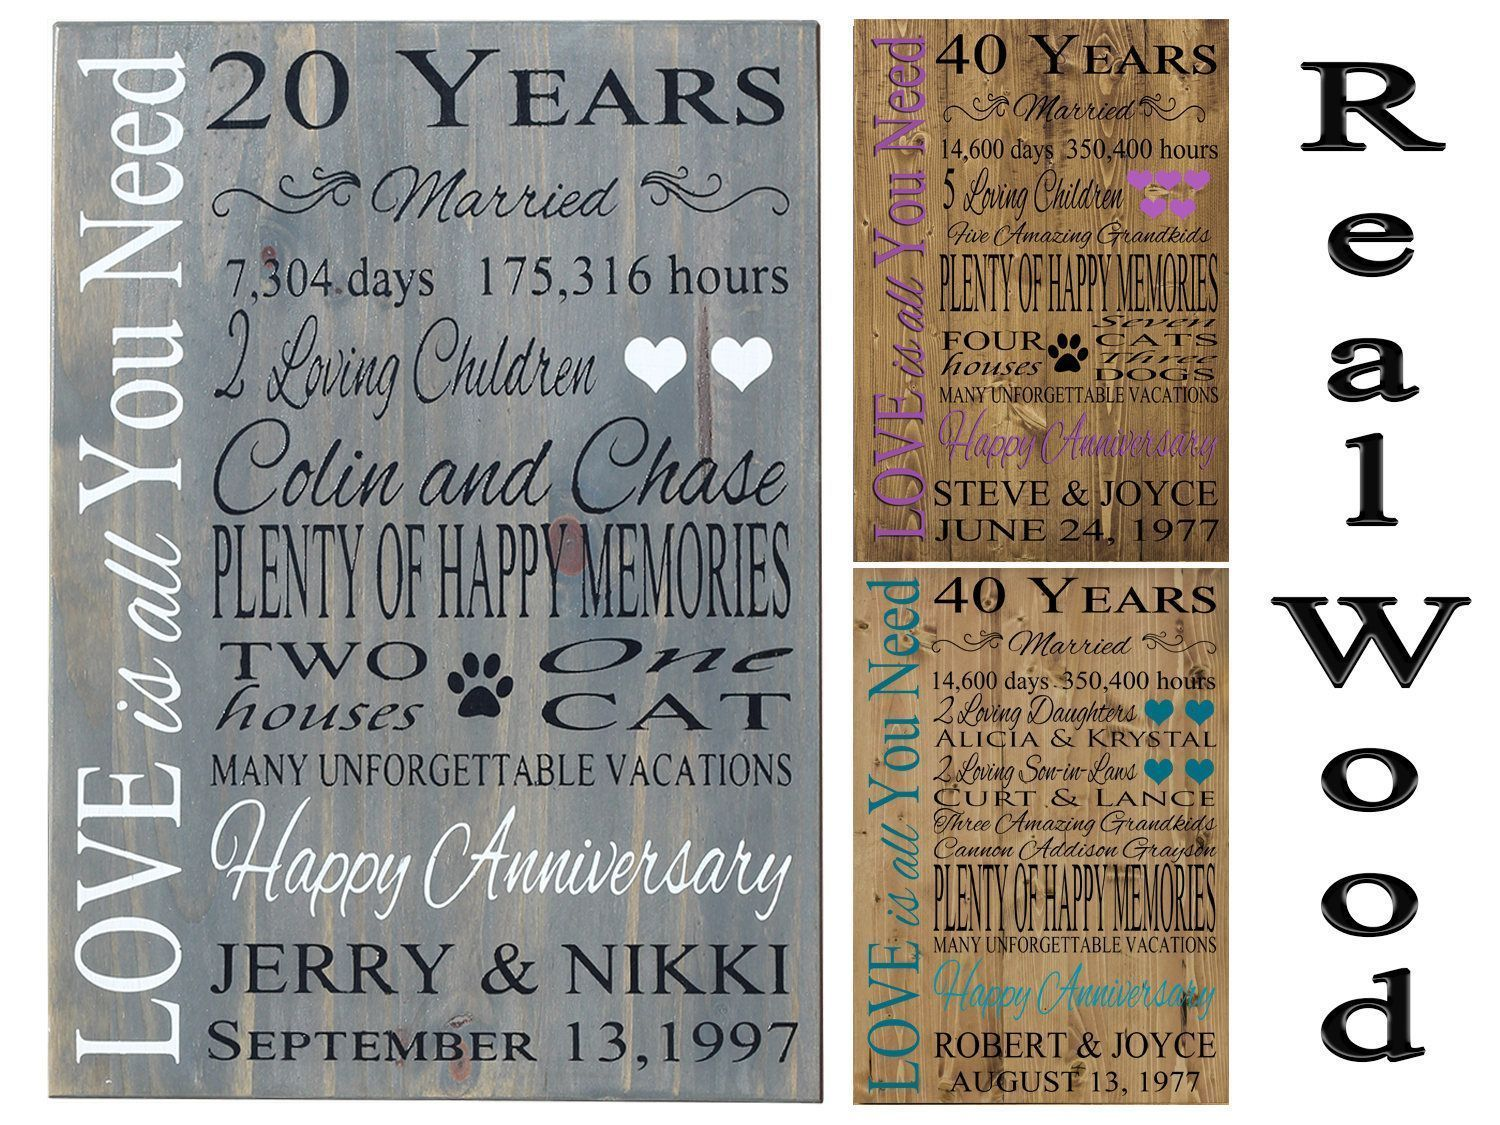 Swanky Parents 40th Anniversary Gifts Parents Ideas Ruby Wedding Anniversary Ruby Wedding Anniversary Anniversary Gifts